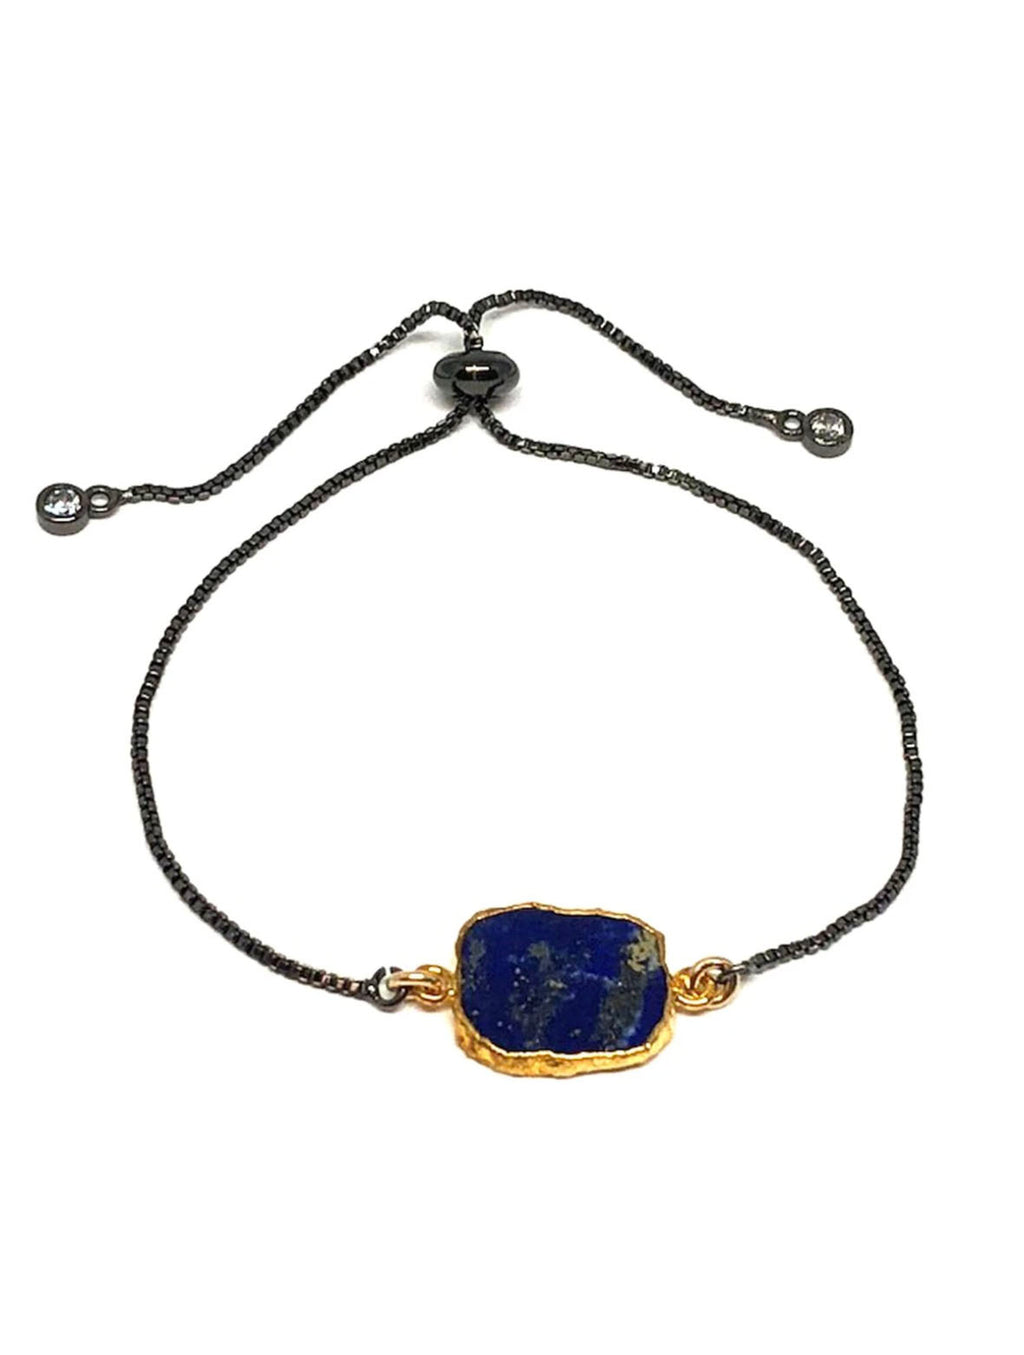 Athena Designs Pull On Bracelet in Lapis